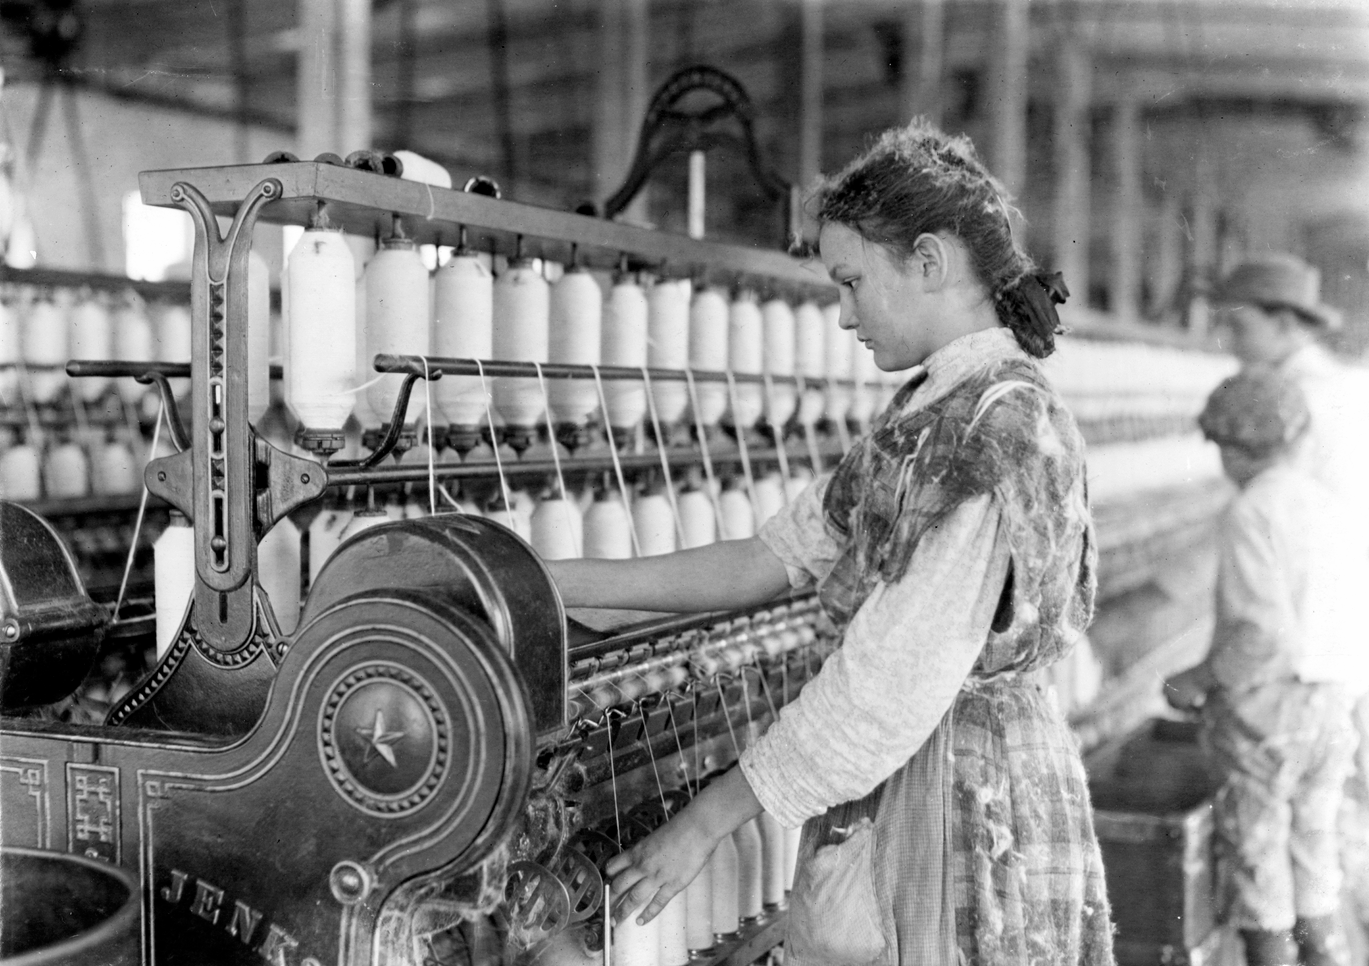 Spinner in Vivian Cotton Mills, Cherryville, N